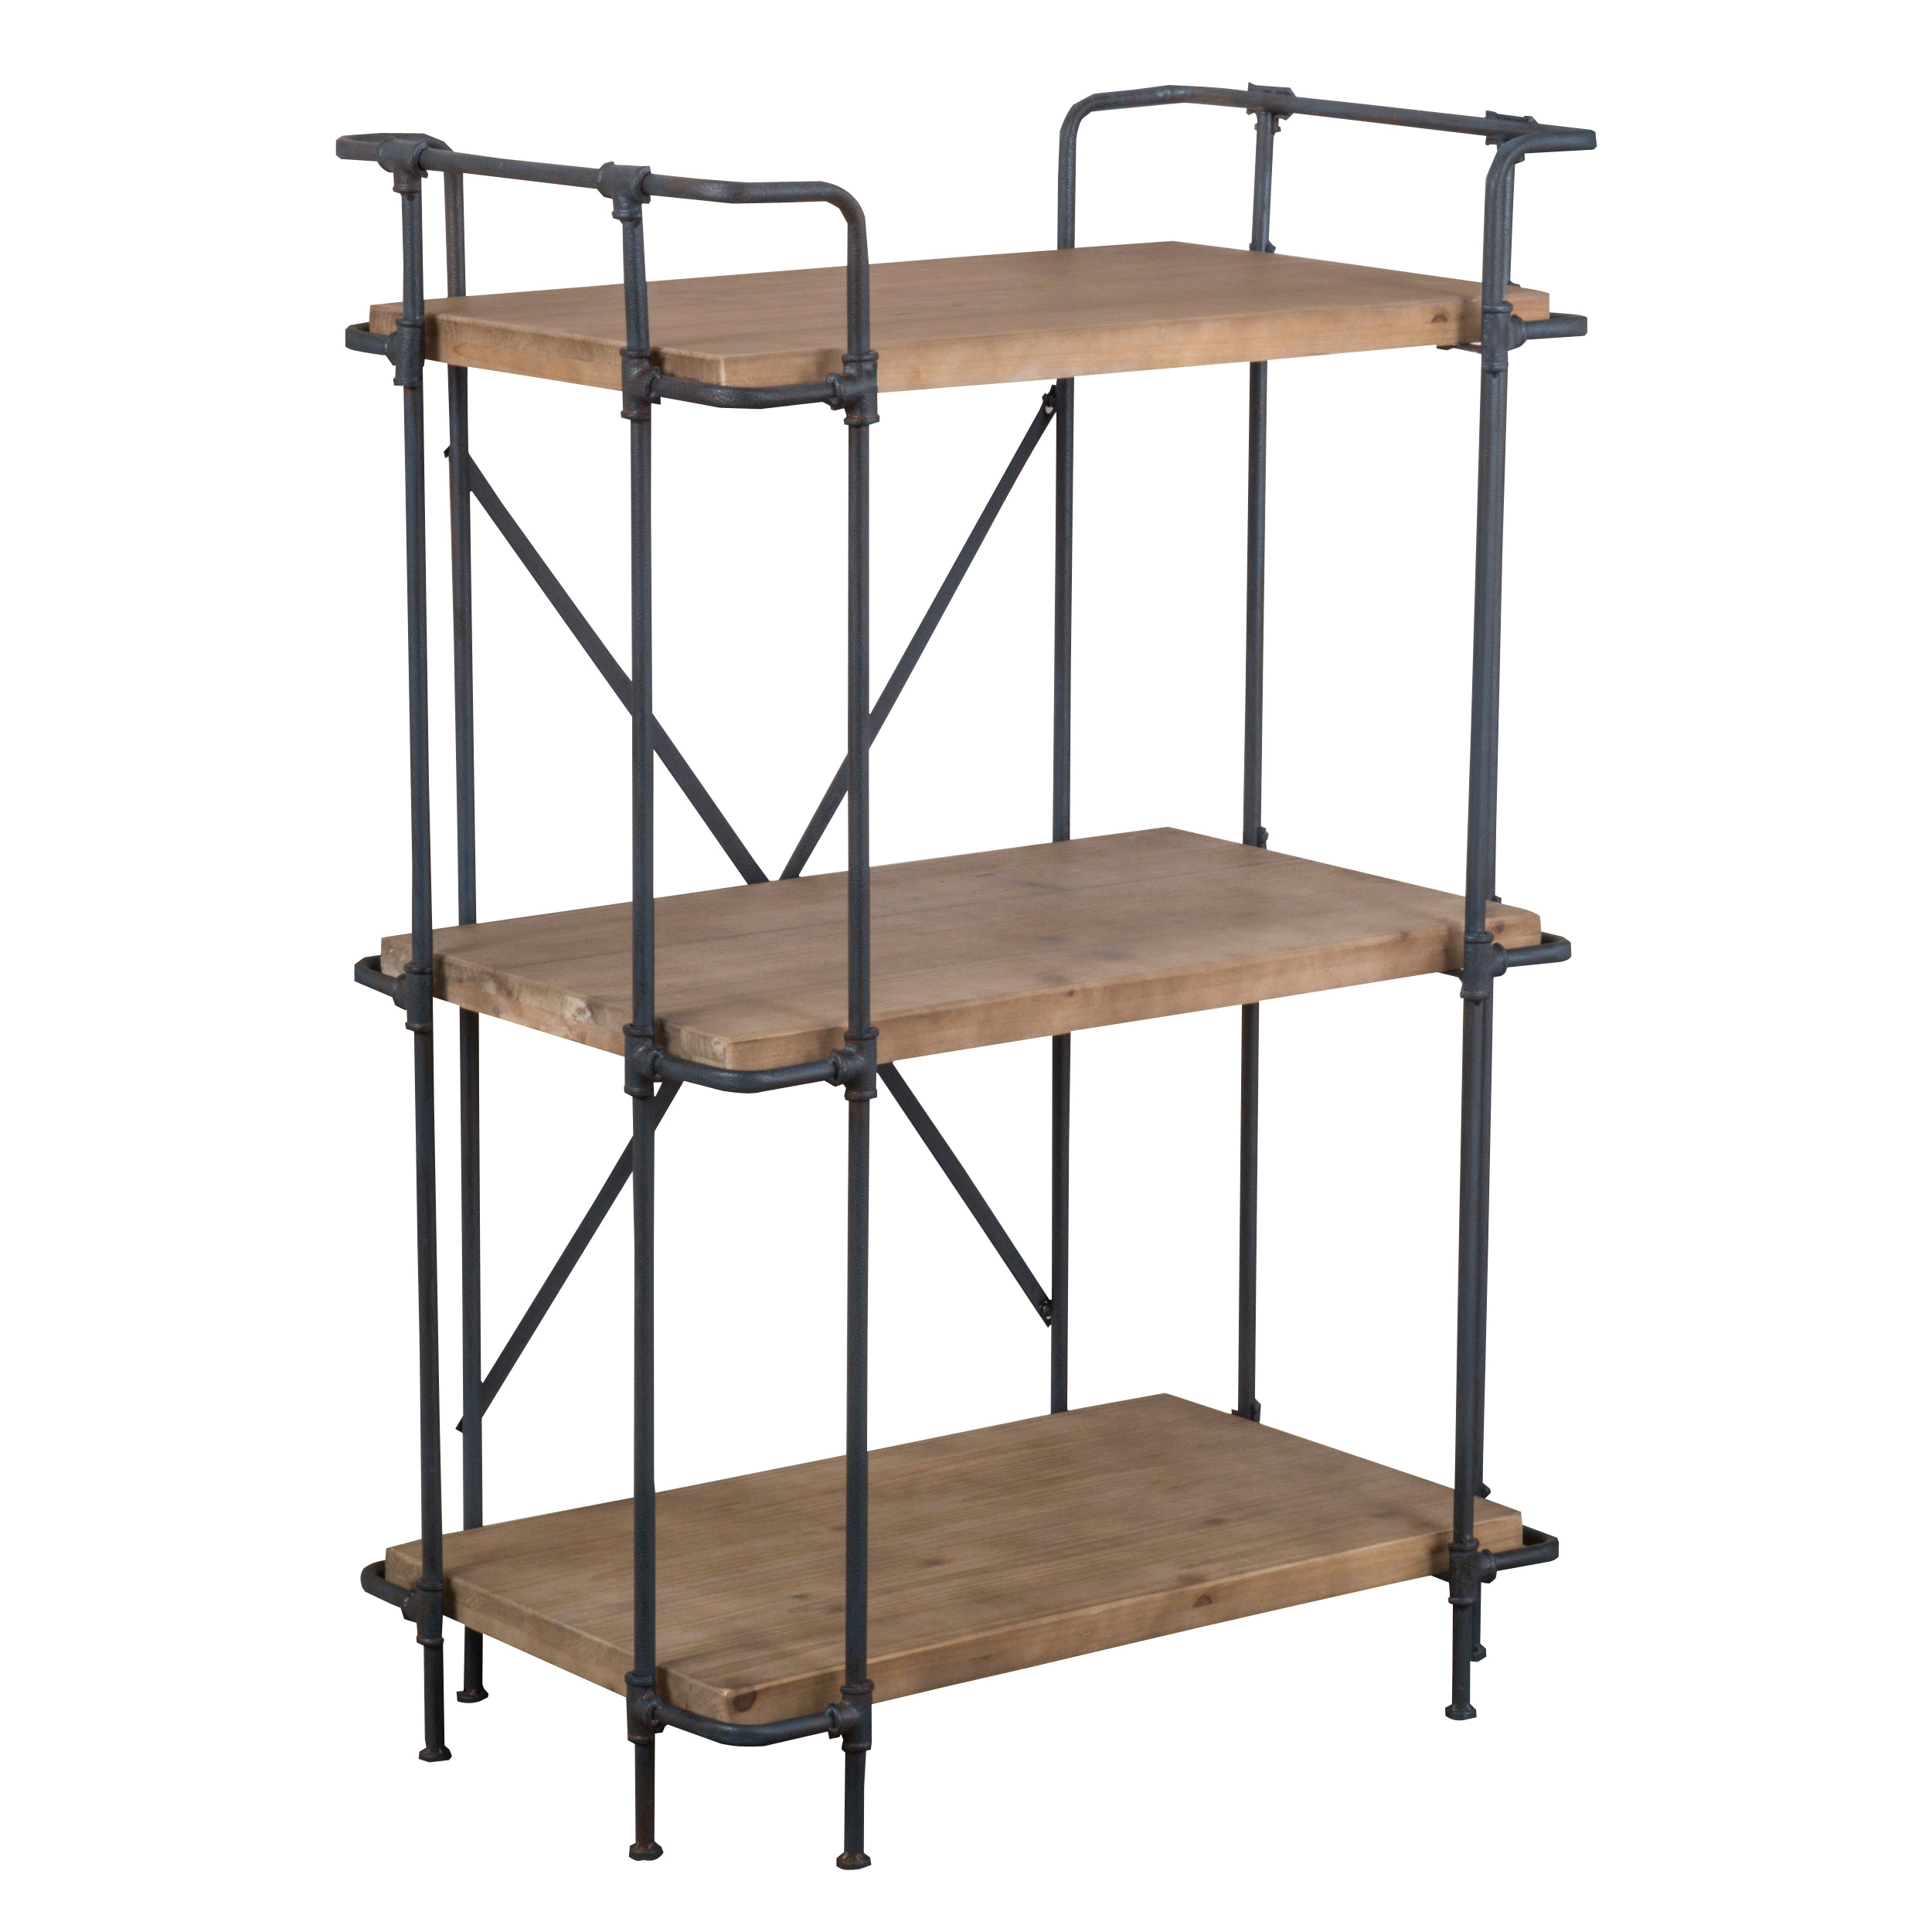 Brandon Outdoor Wood and Iron 3-Tier Shelf Etagere by GDF Studio